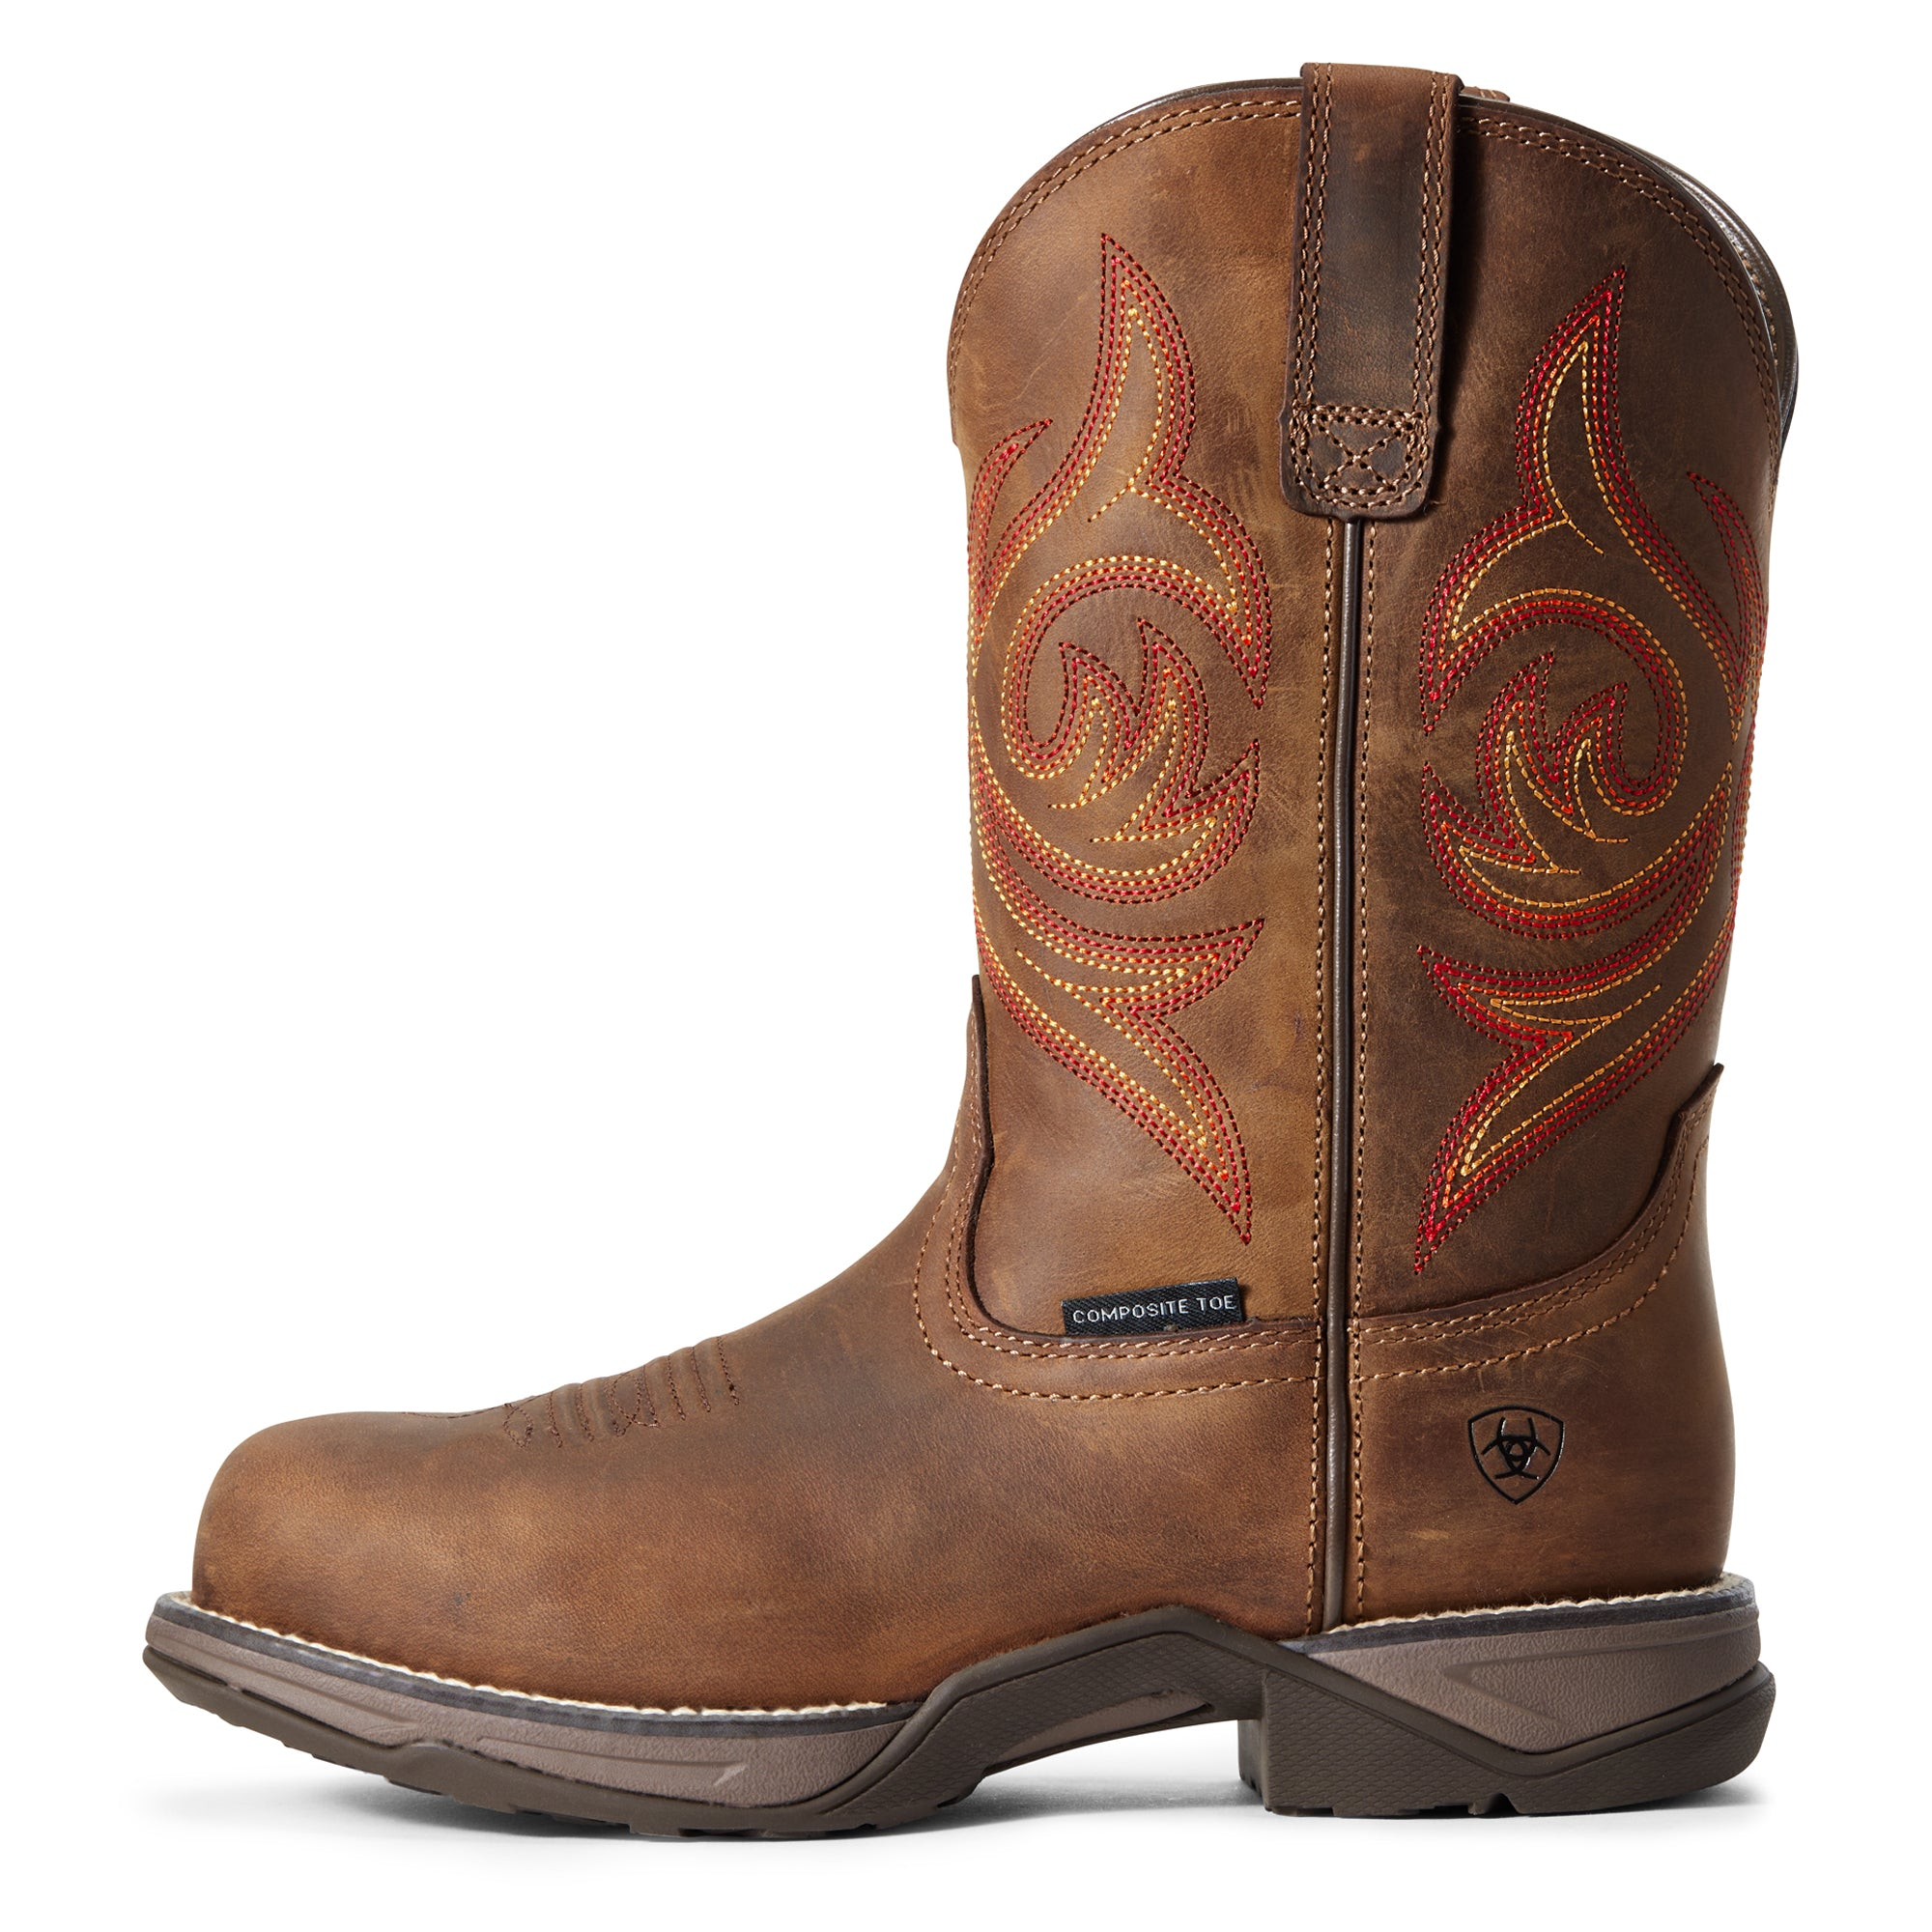 'Ariat' Women's 10